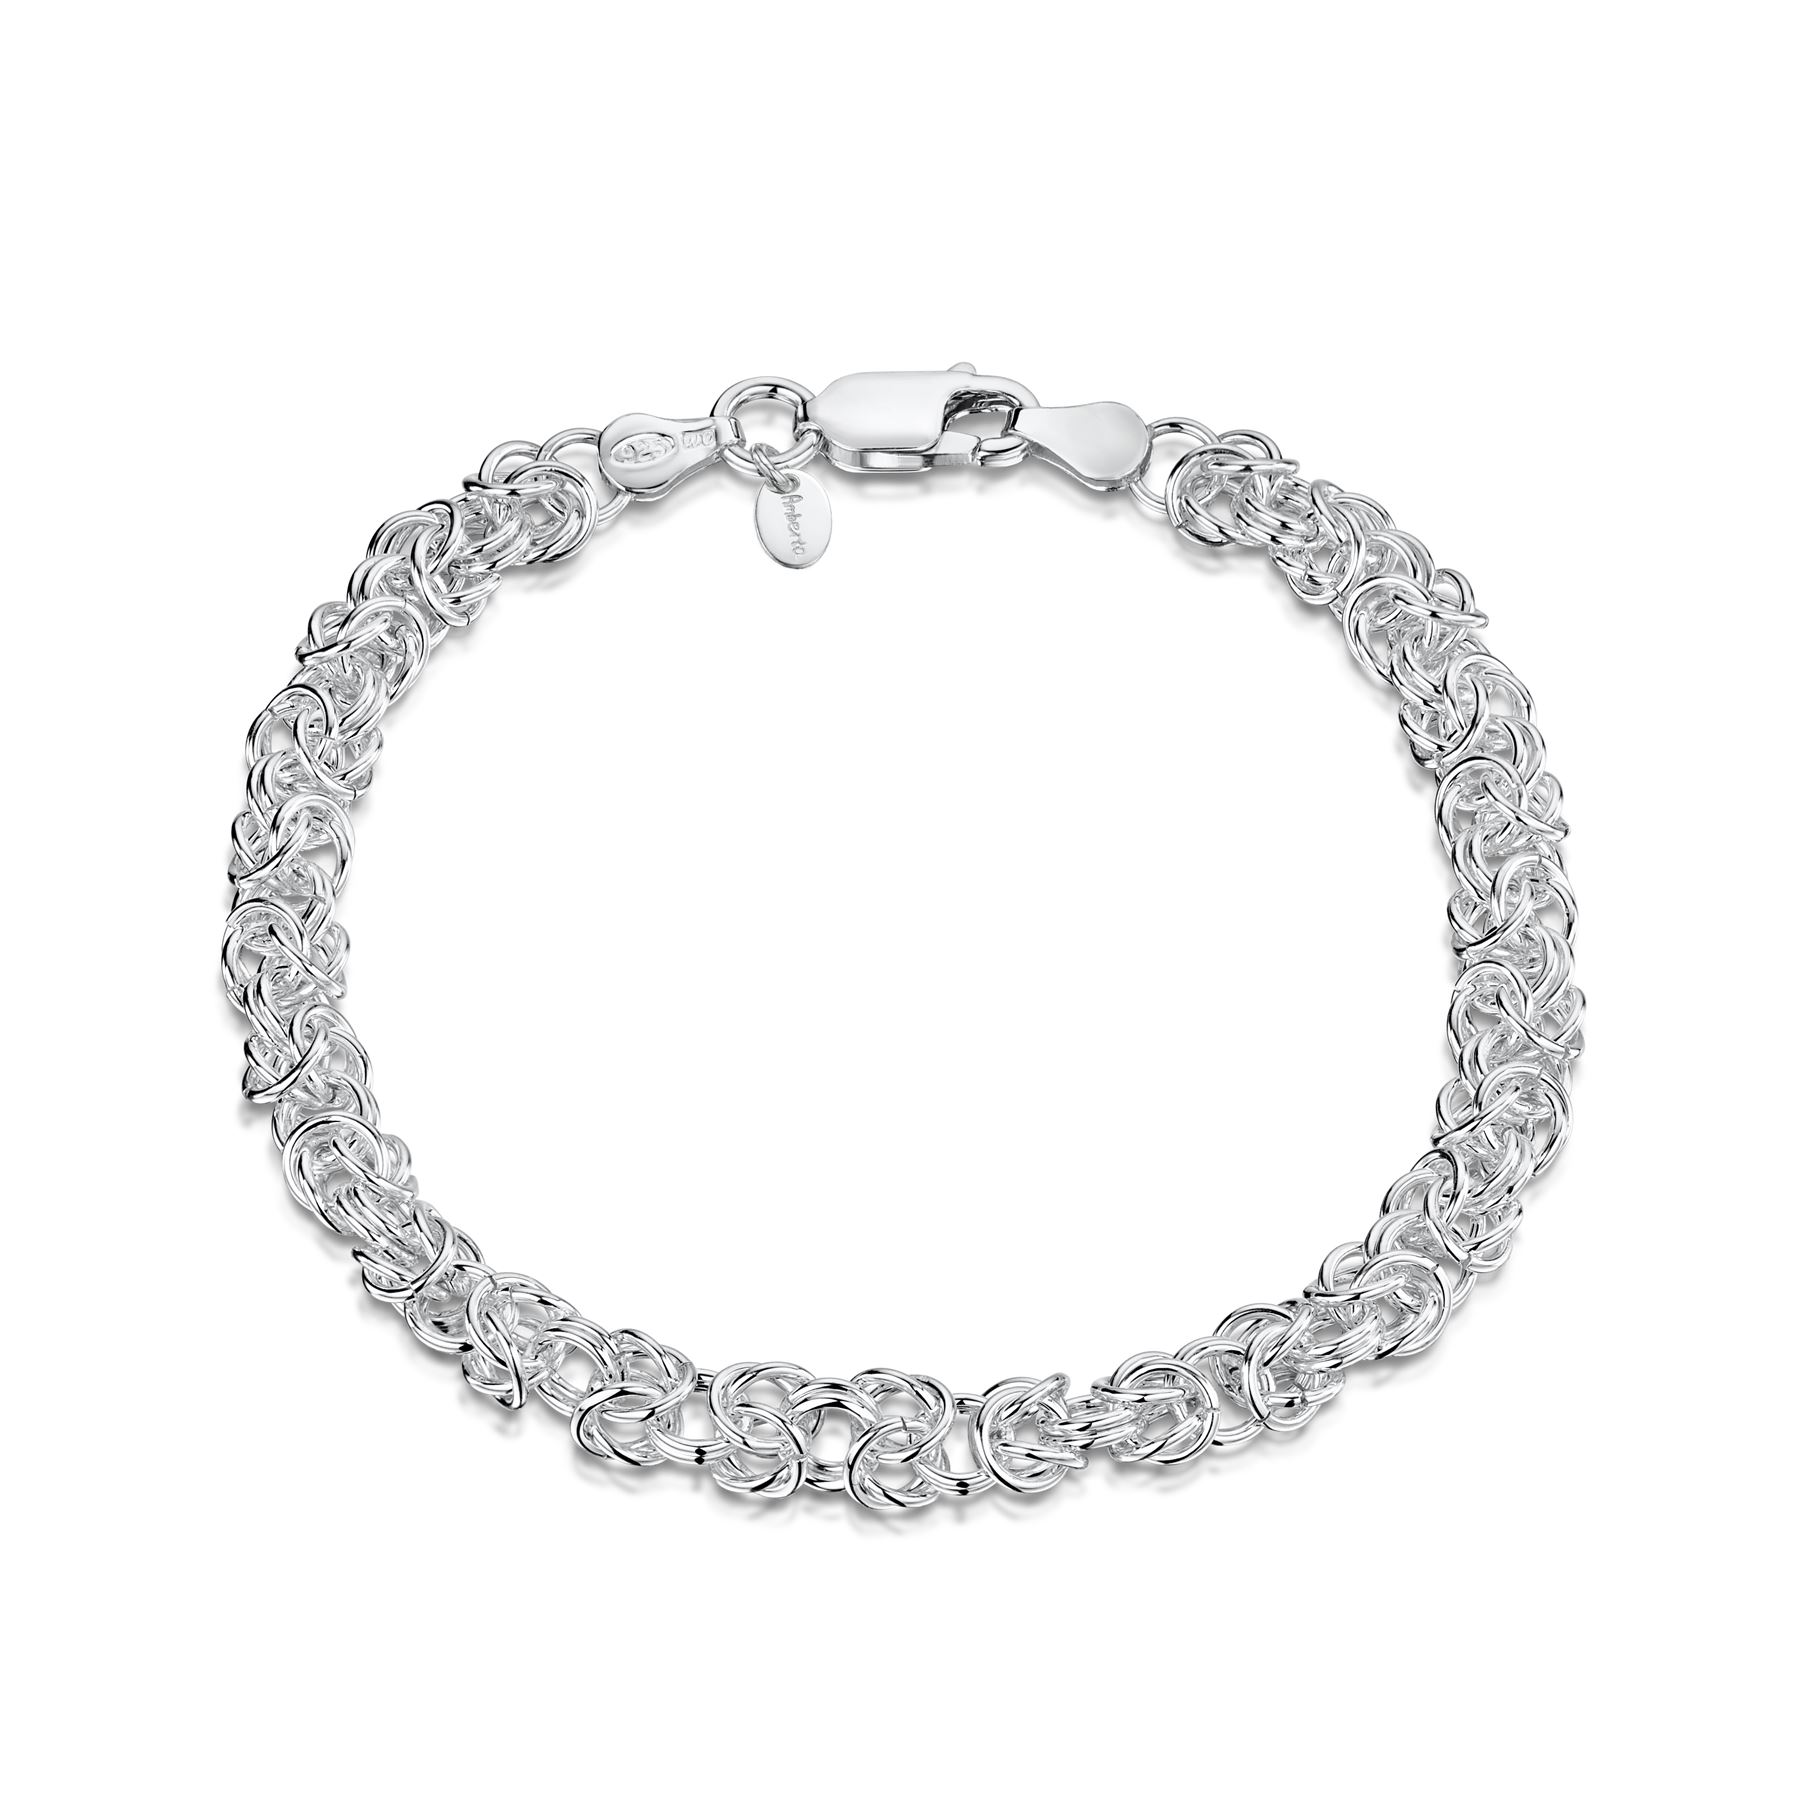 Amberta-Genuine-Real-925-Sterling-Silver-Chain-Bracelet-for-Women-from-Italy miniature 22